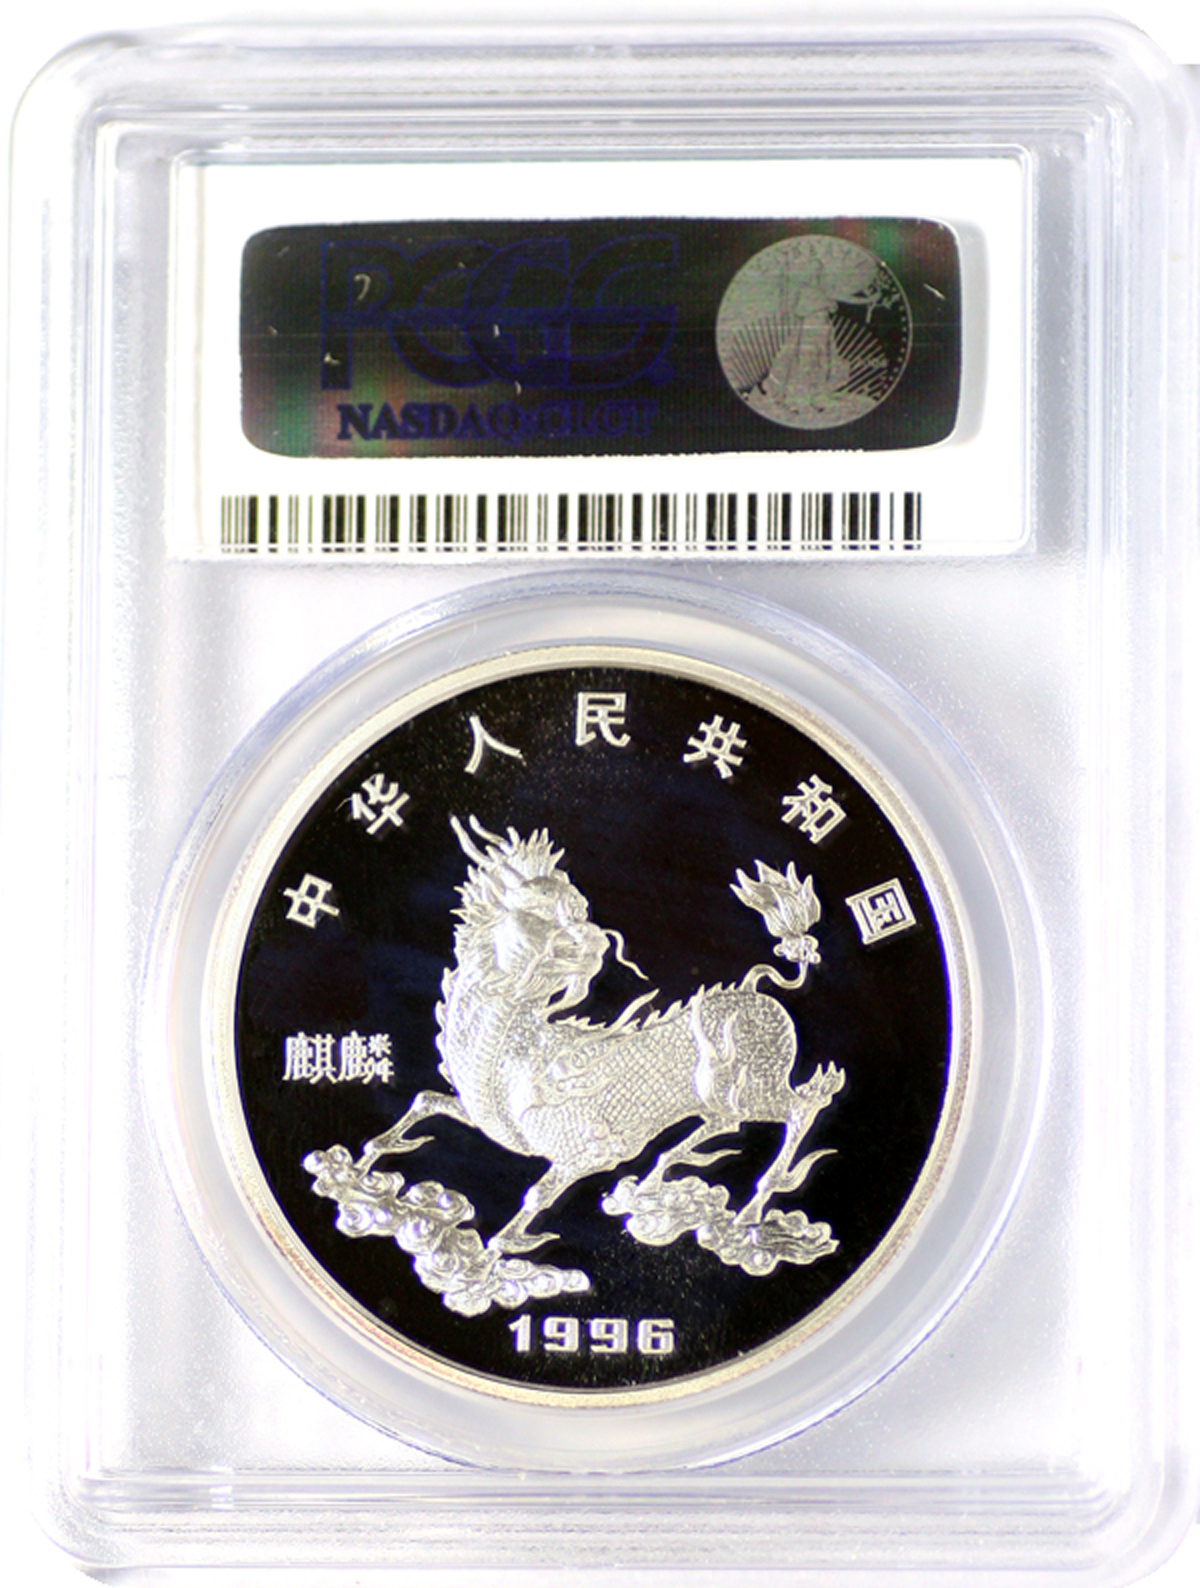 1996 10y China Silver Unicorn Proof